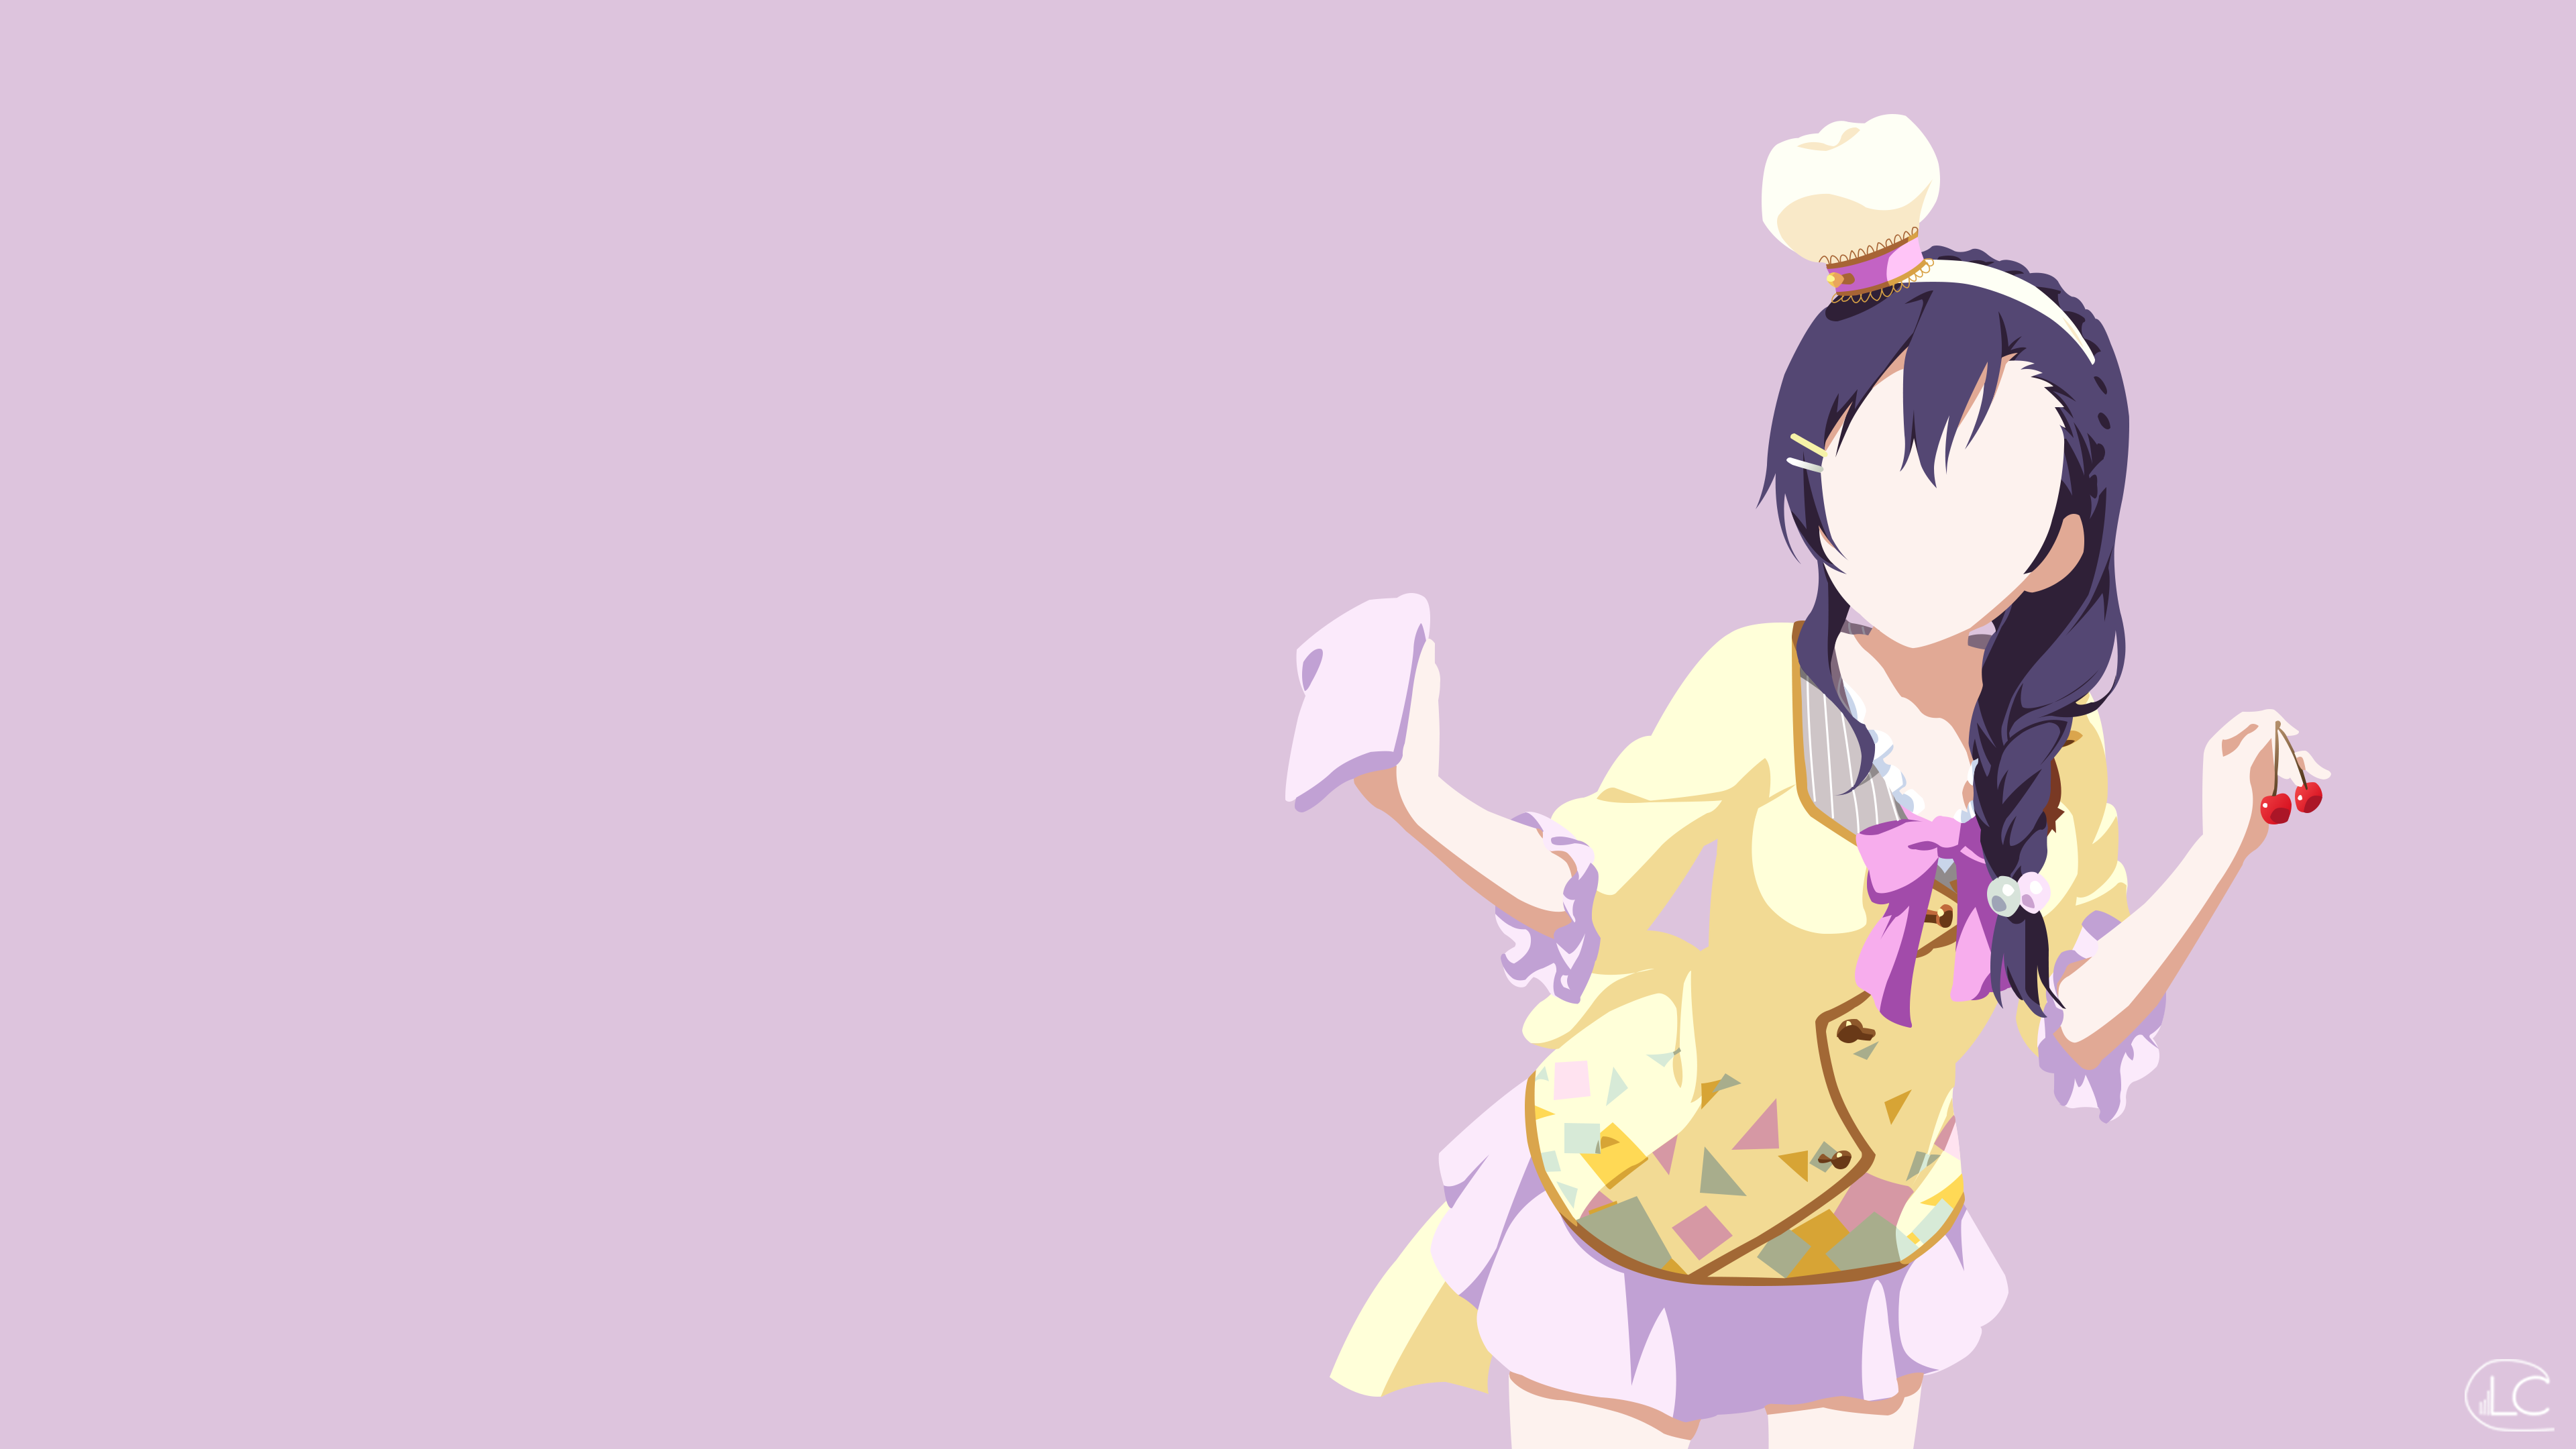 Wallpaper Love Live Tumblr : Nozomi Tojo Love Live Minimalist Anime by Lucifer012 on ...